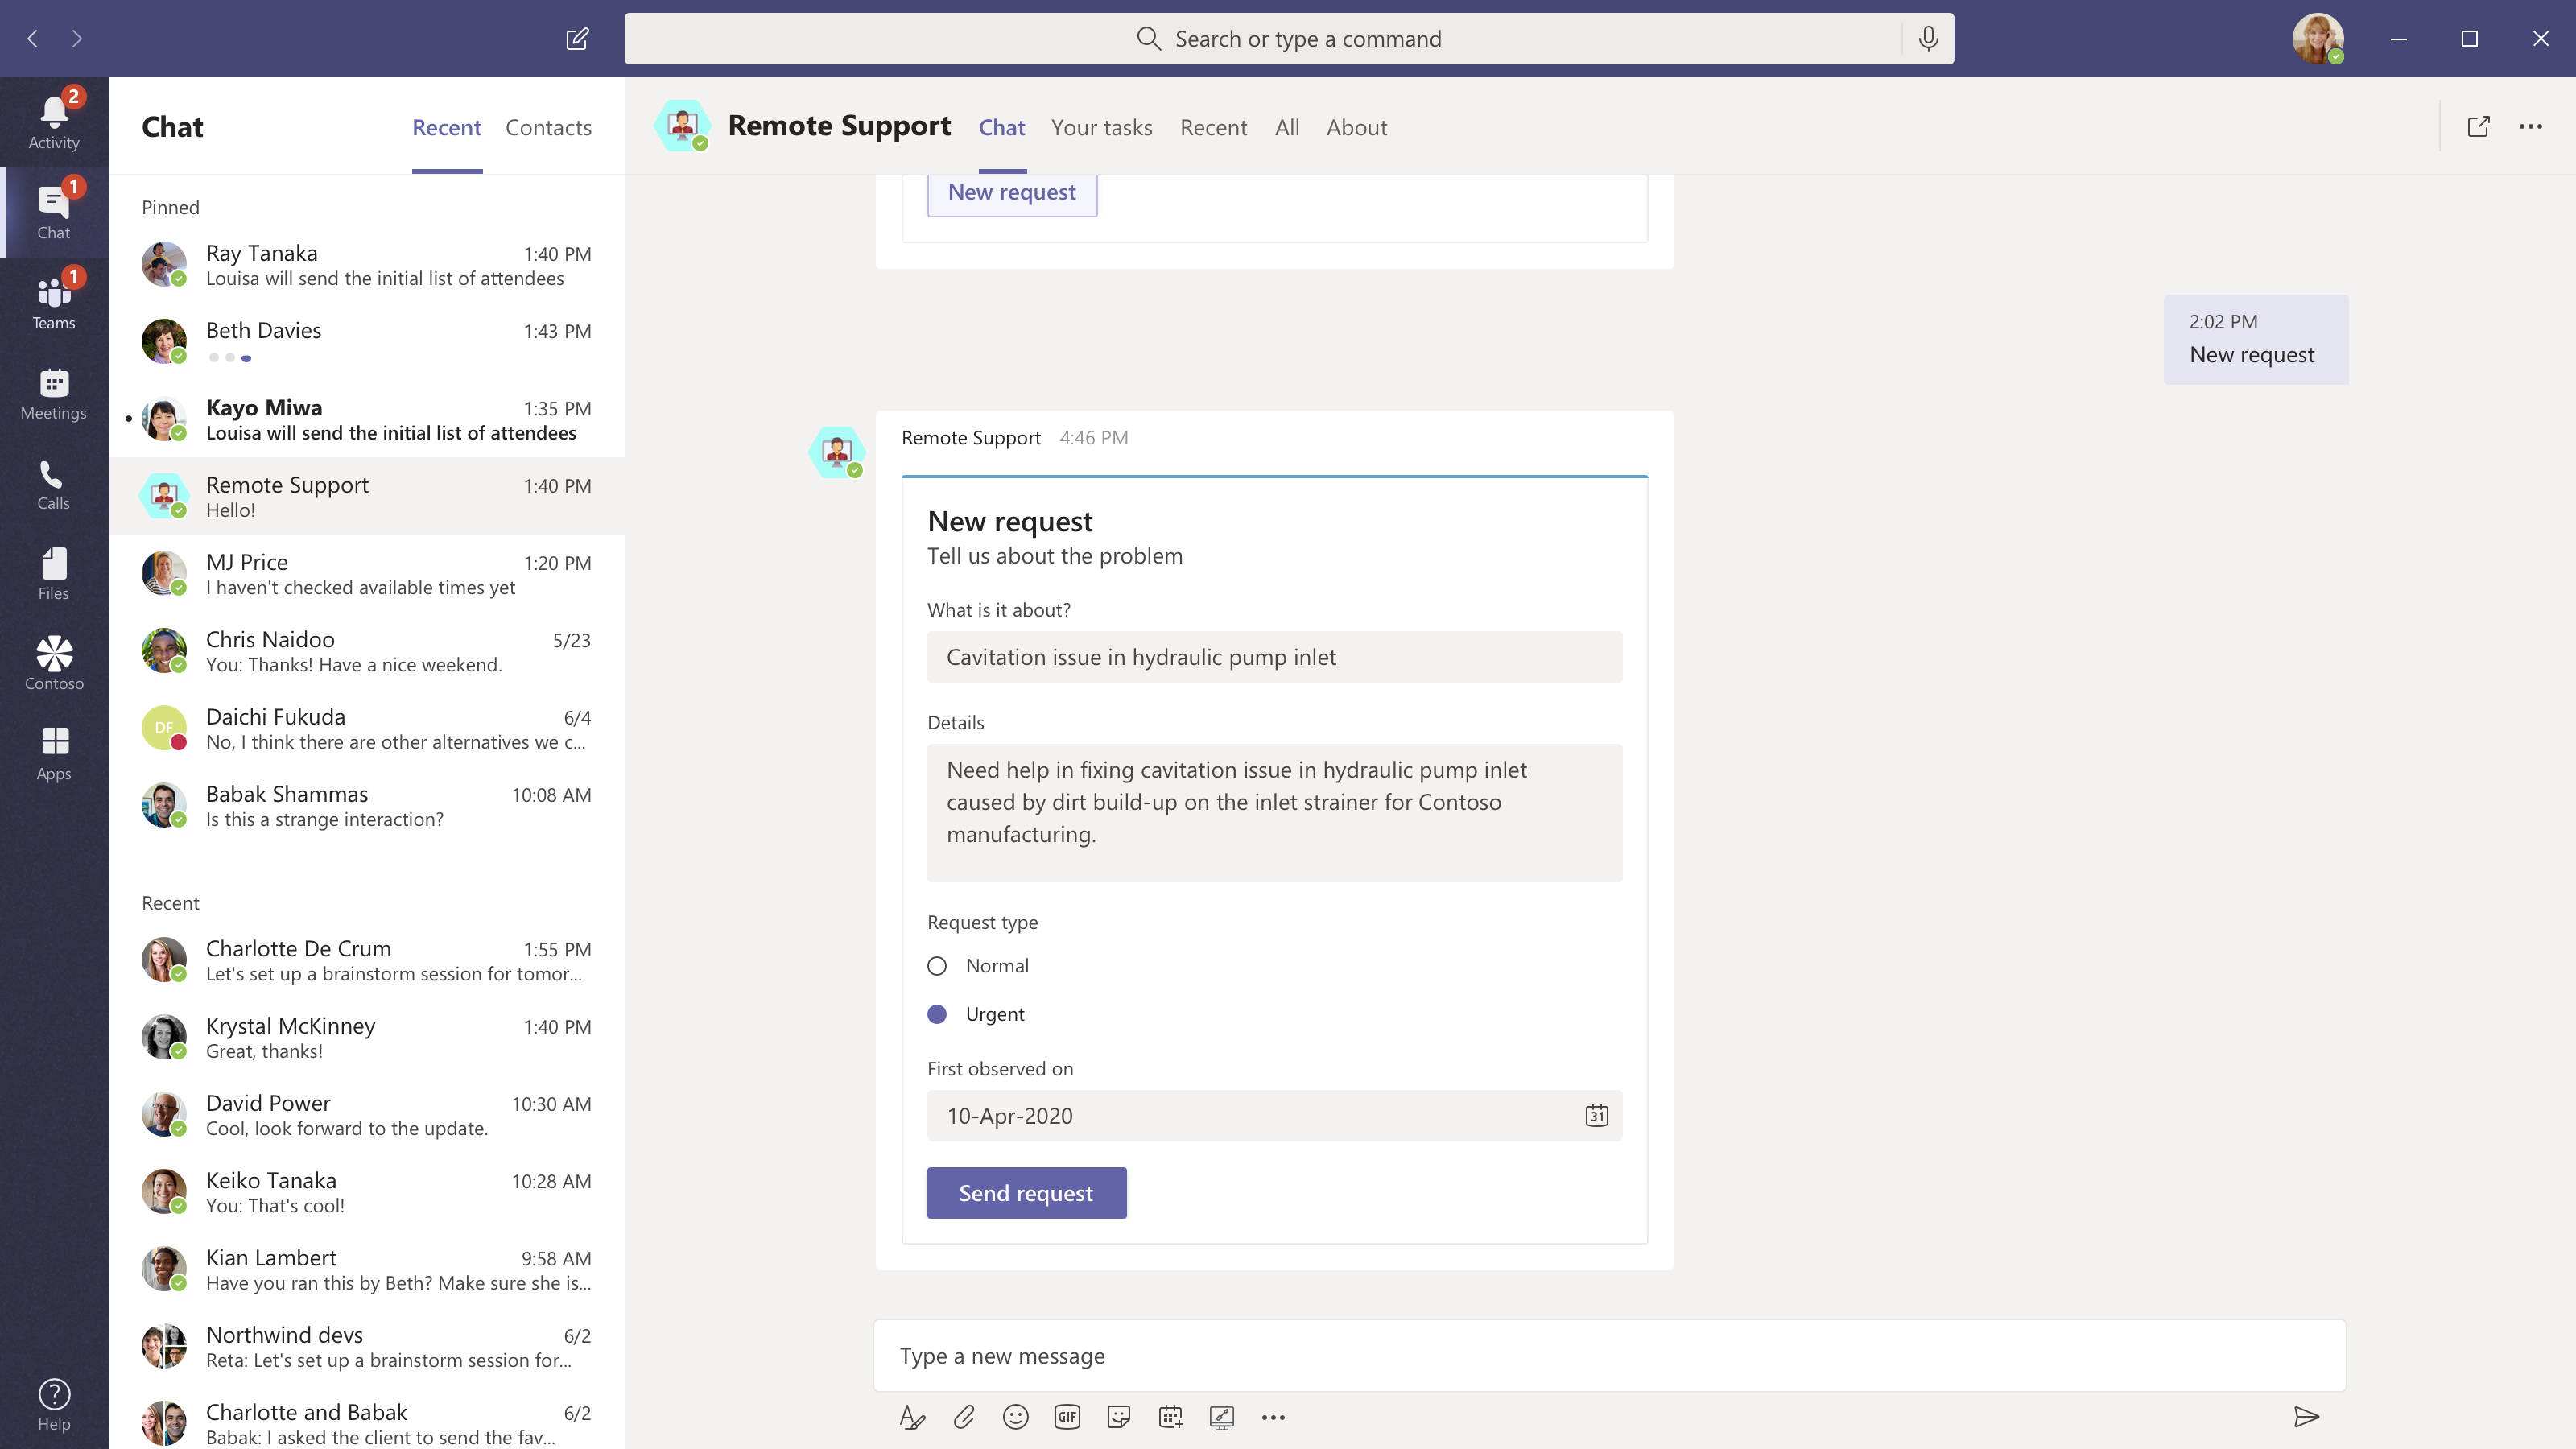 Remote support new request